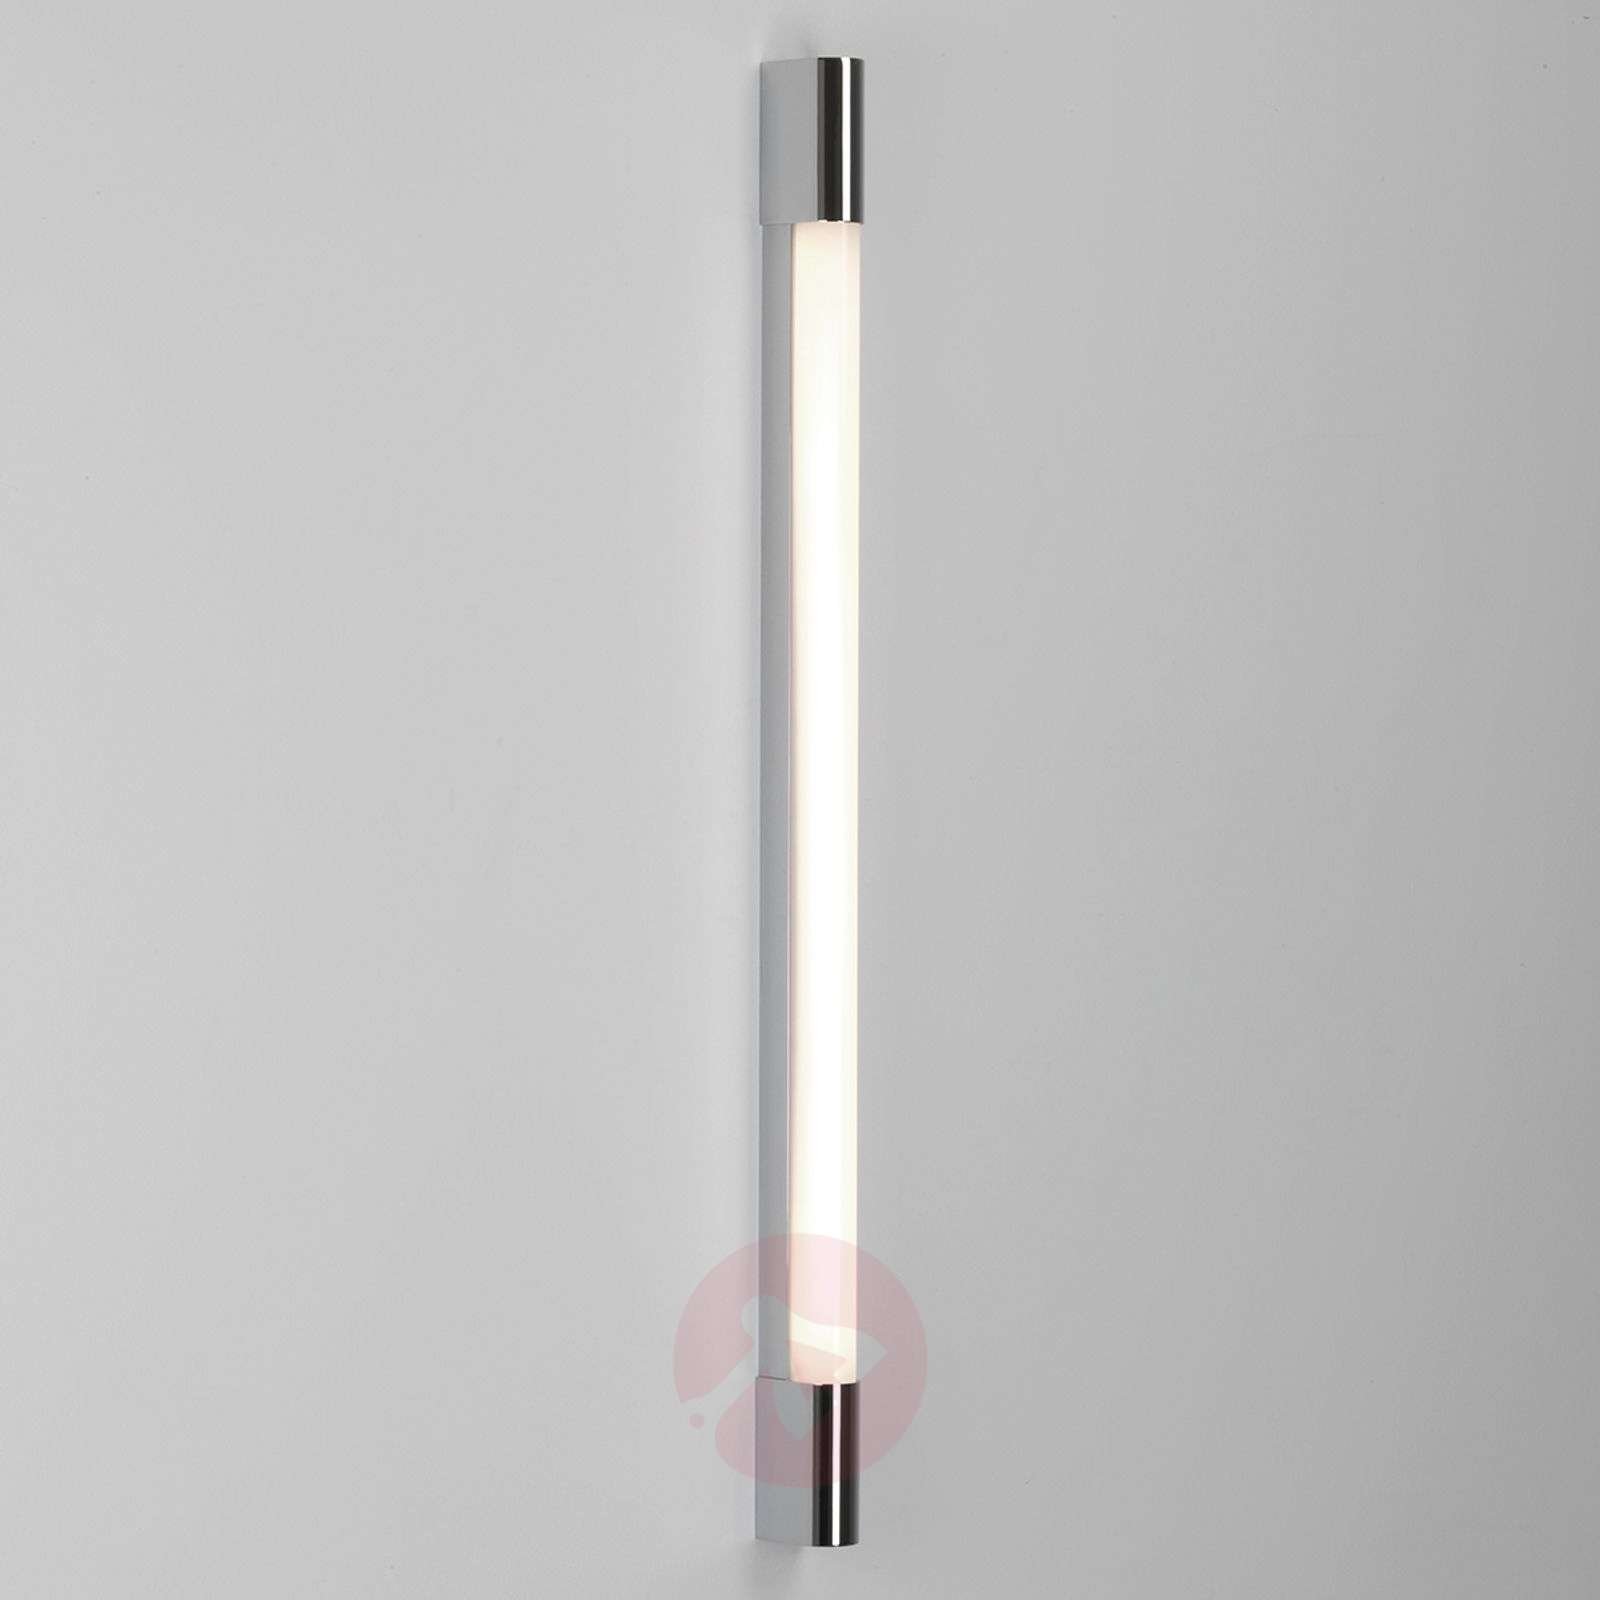 Palermo Wall Light Elegant 90 cm 39 W-1020043-03